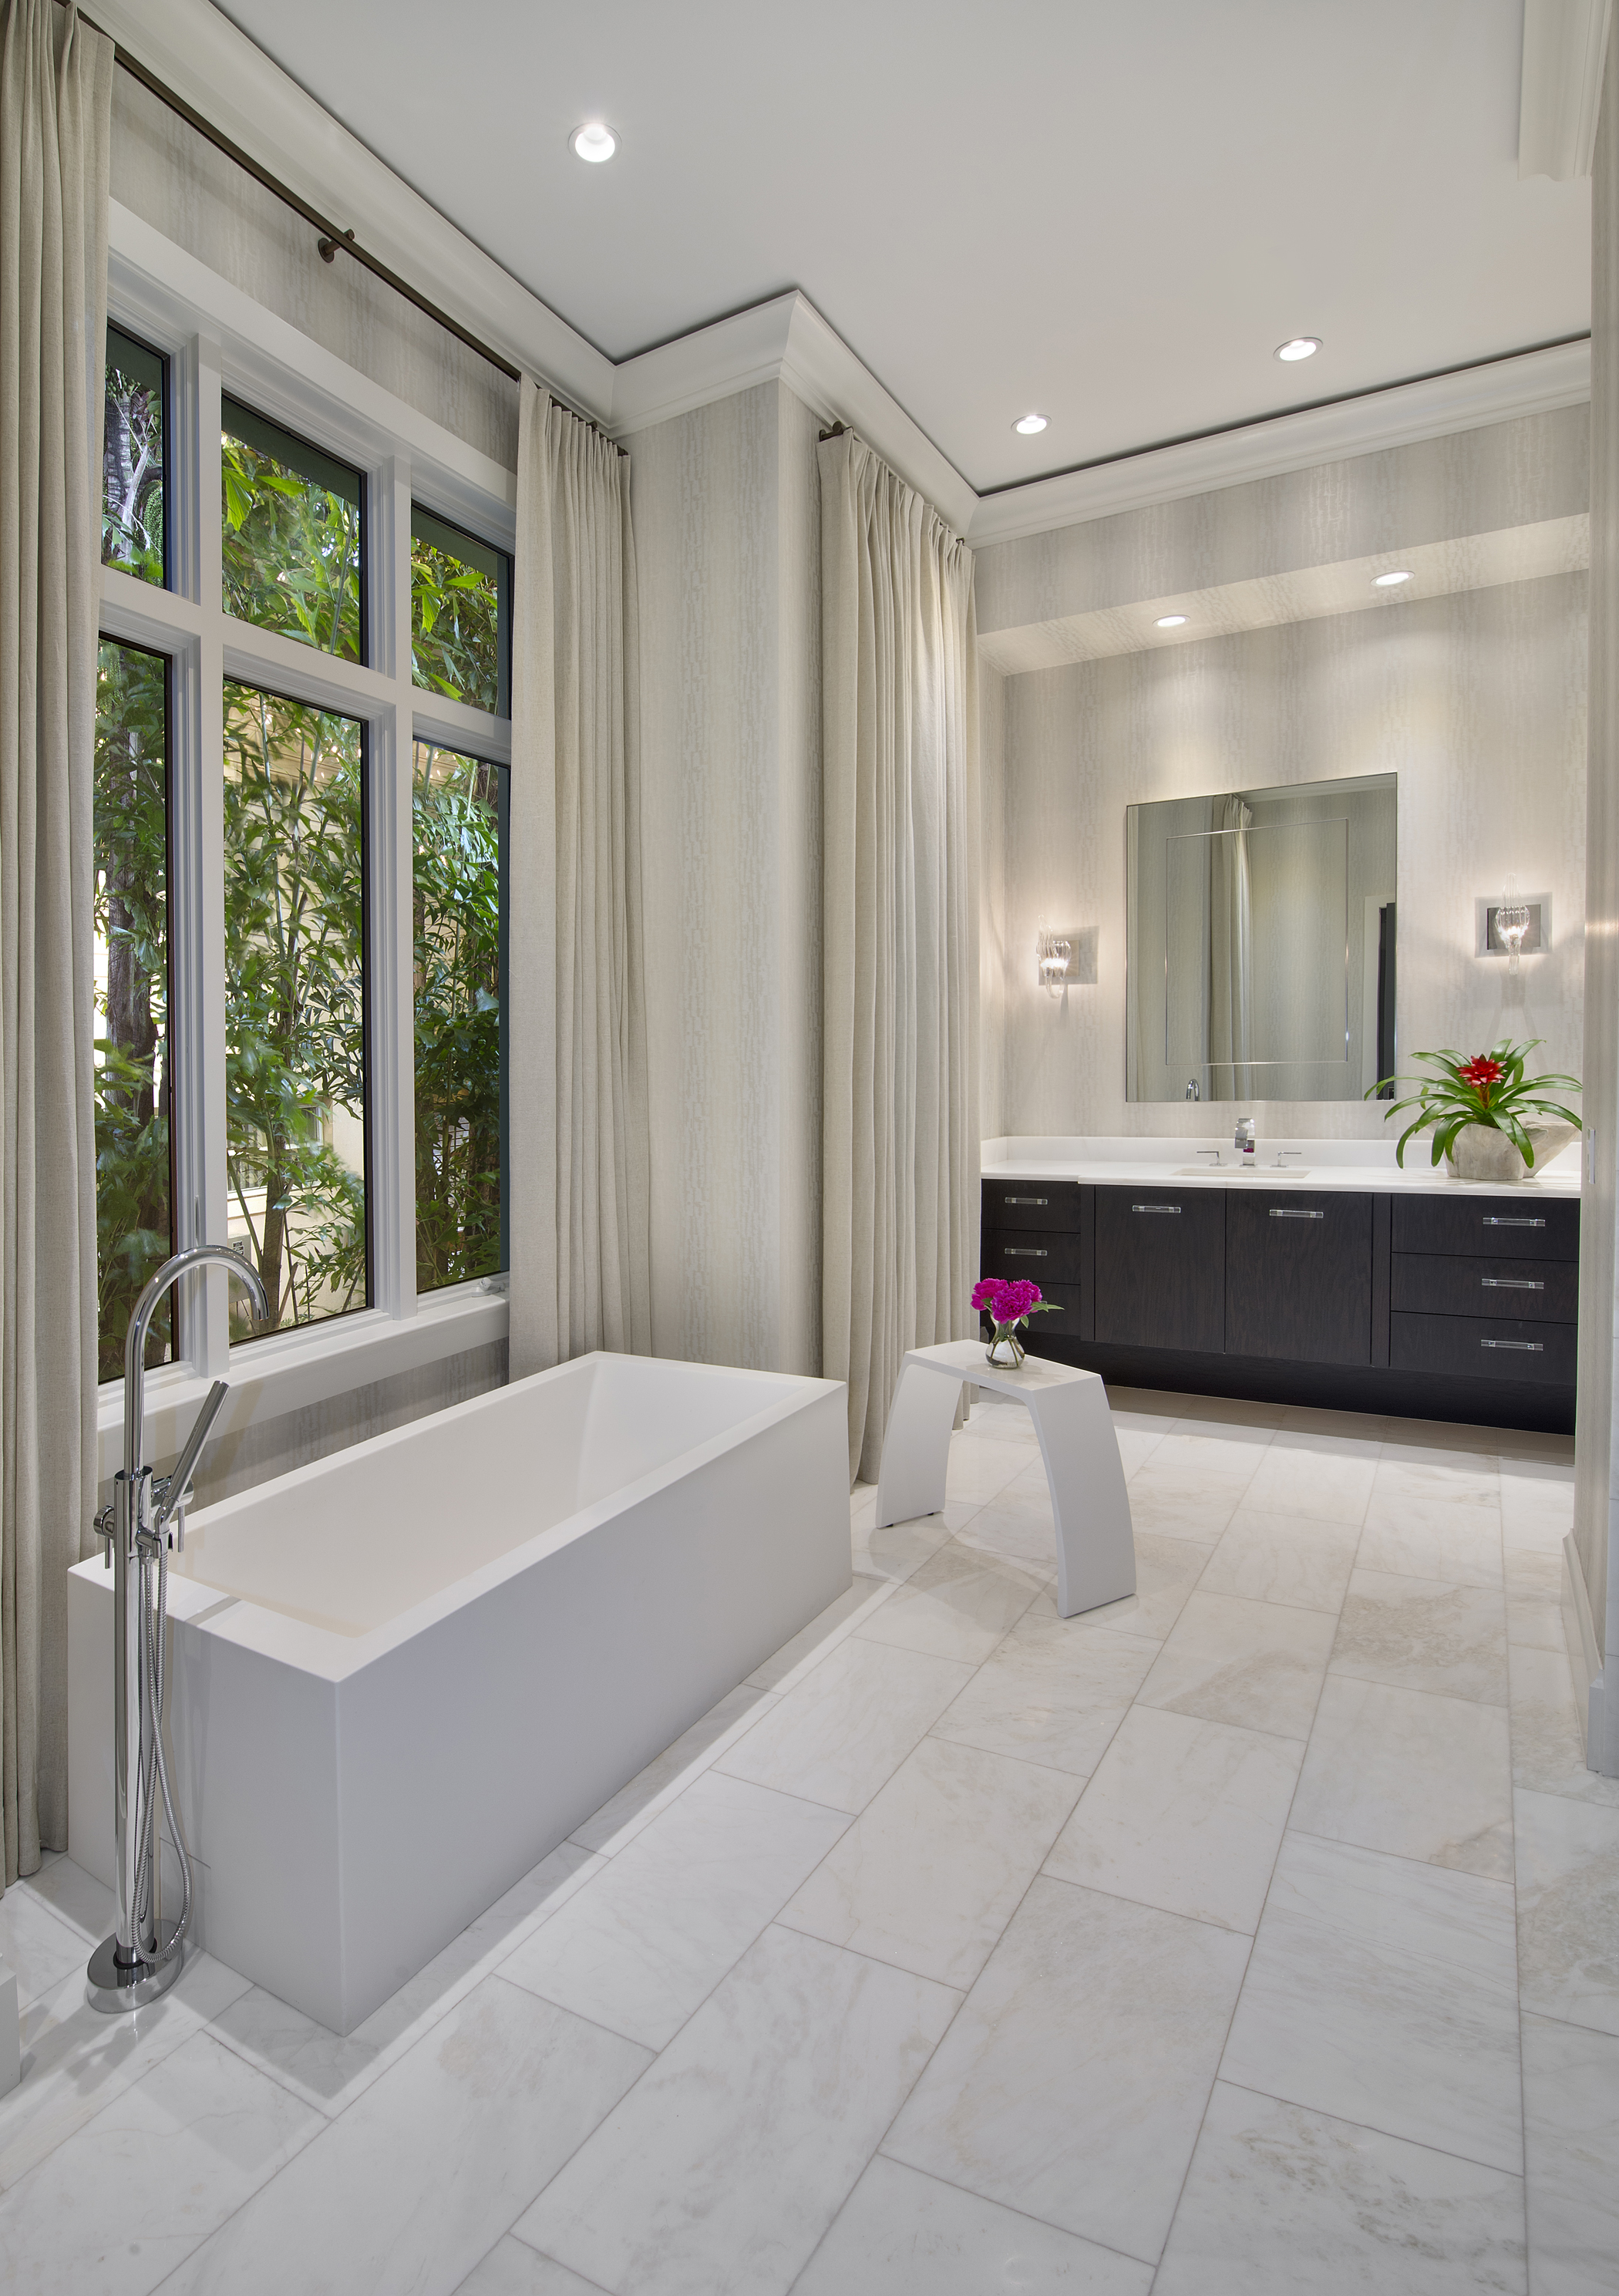 Jeffrey Fisher Home Luxury Interior Design Imagined Home Decor Custom Bathroom